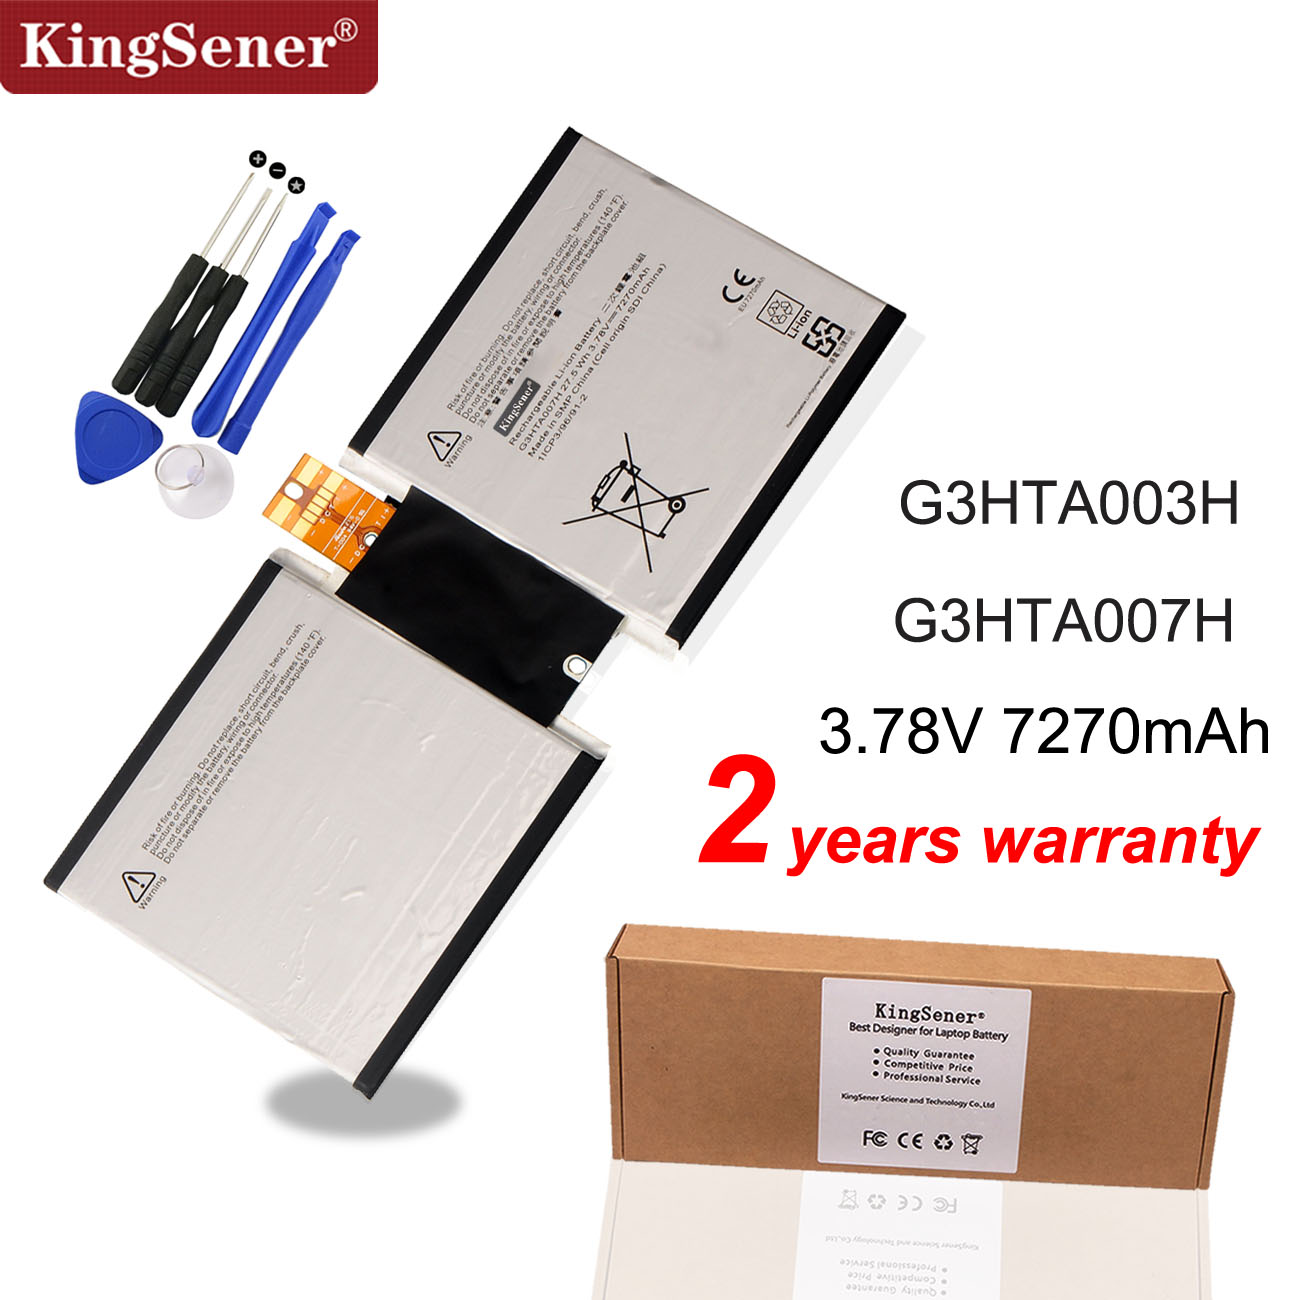 KingSener G3HTA003H G3HTA007H  Laptop Battery For Microsoft Surface Pro 3 1645 Series Tablet PC G3HTA004H 27.5WH/7270mAh